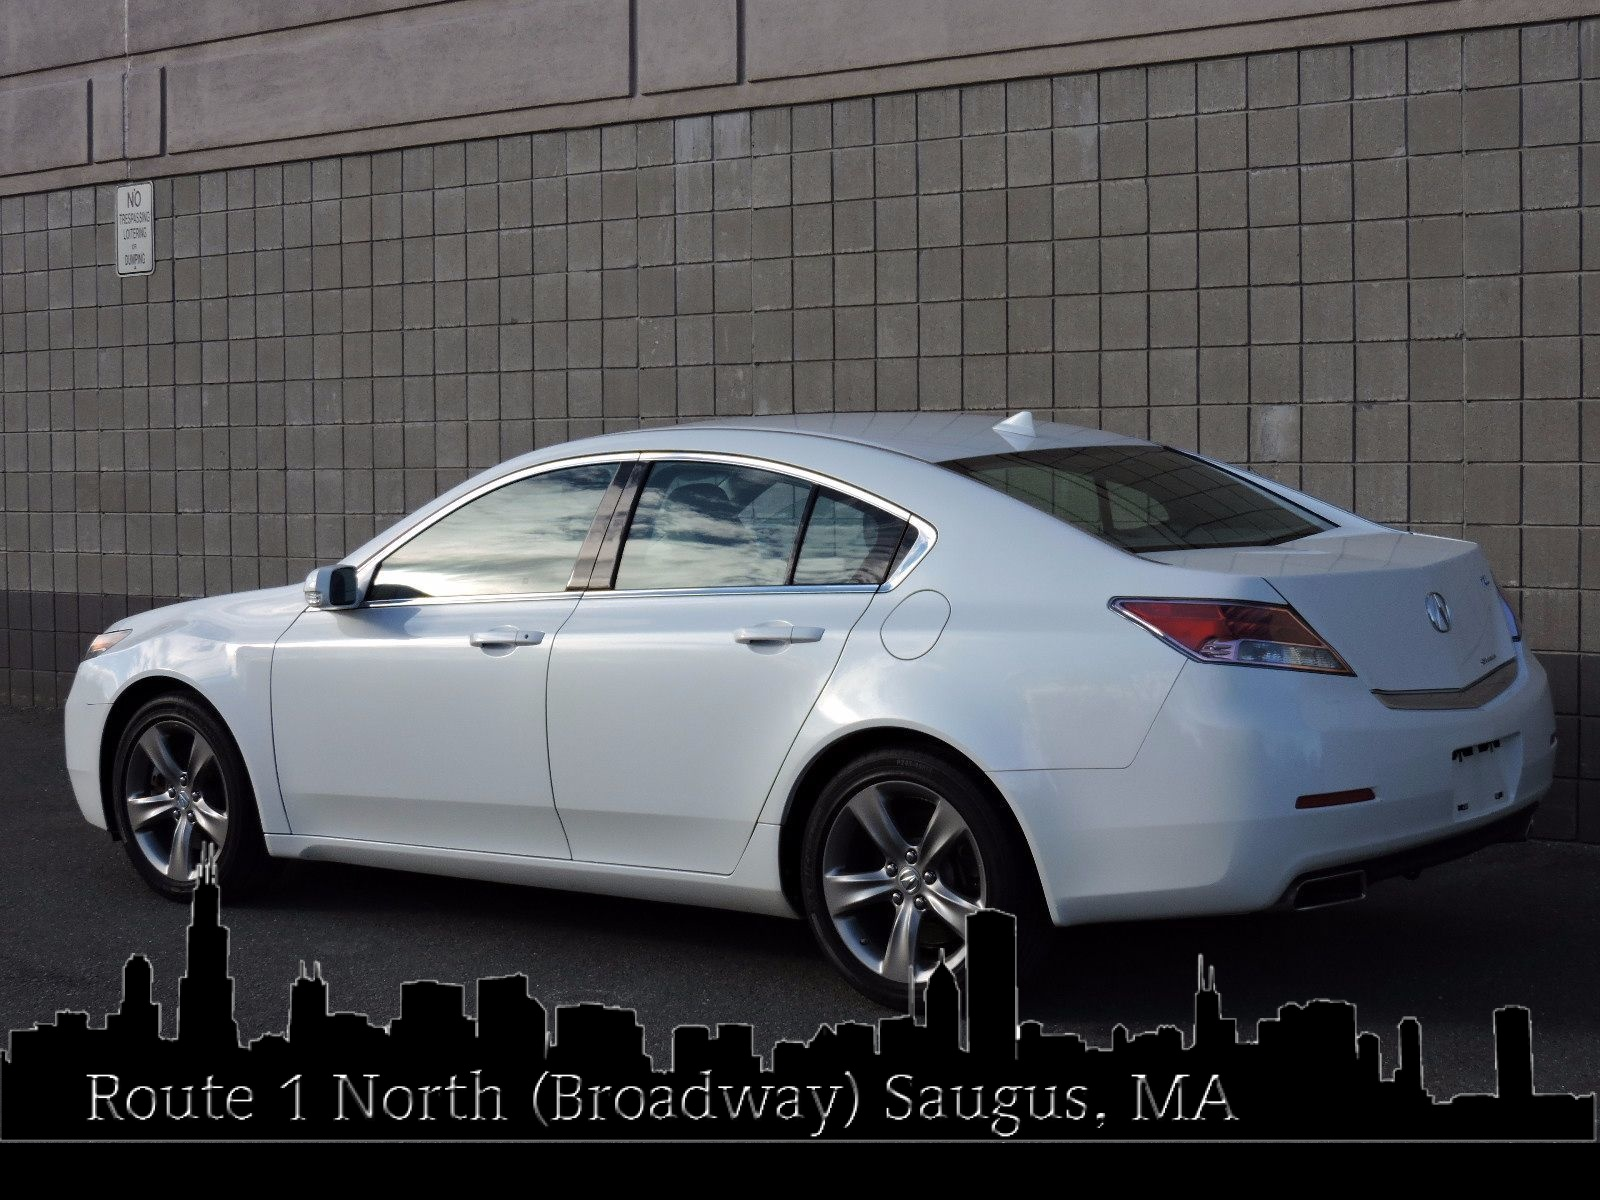 2013 Acura TL - All Wheel Drive